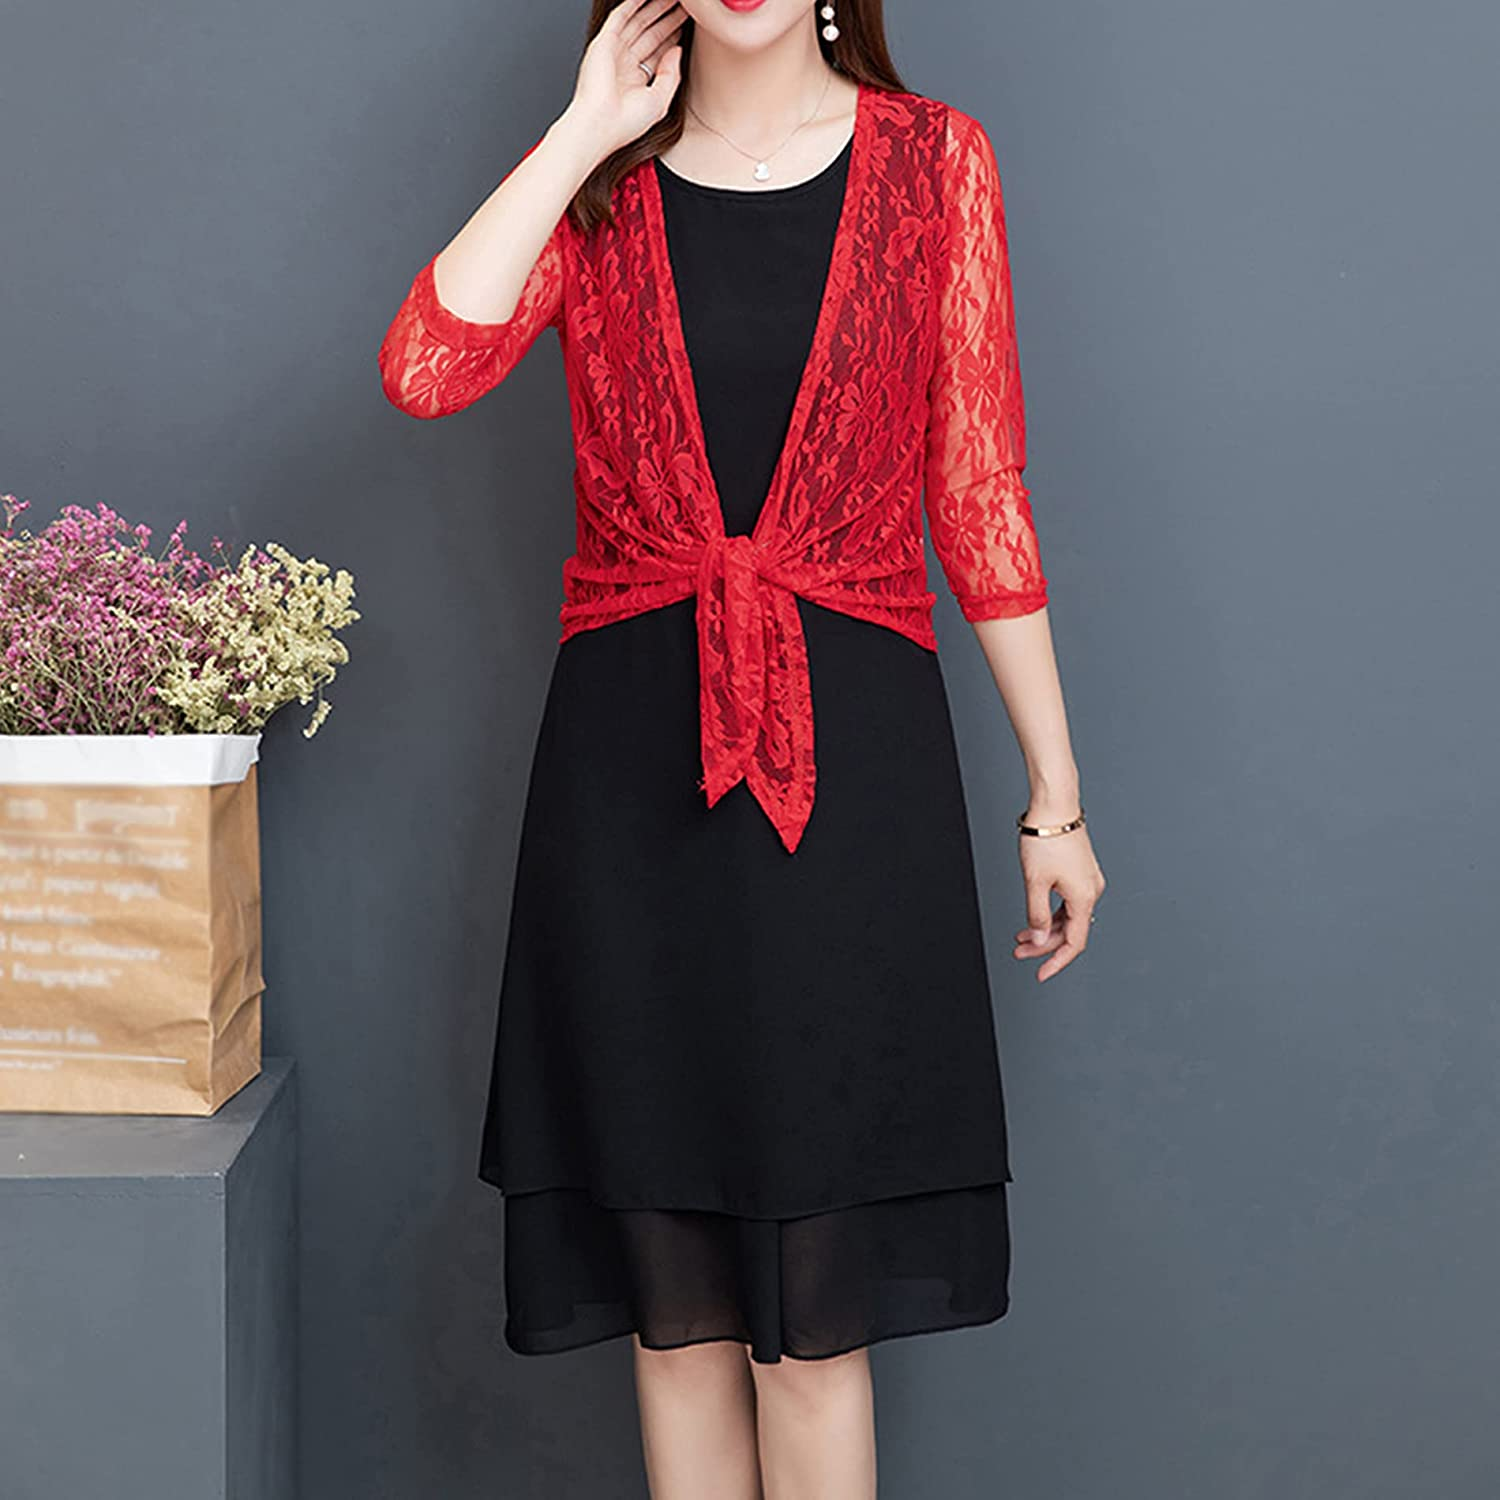 Songling Women's Lace Crochet Cardigans 3/4 Sleeves Tie Front Sheer Cover Up Shrugs Kimono Top